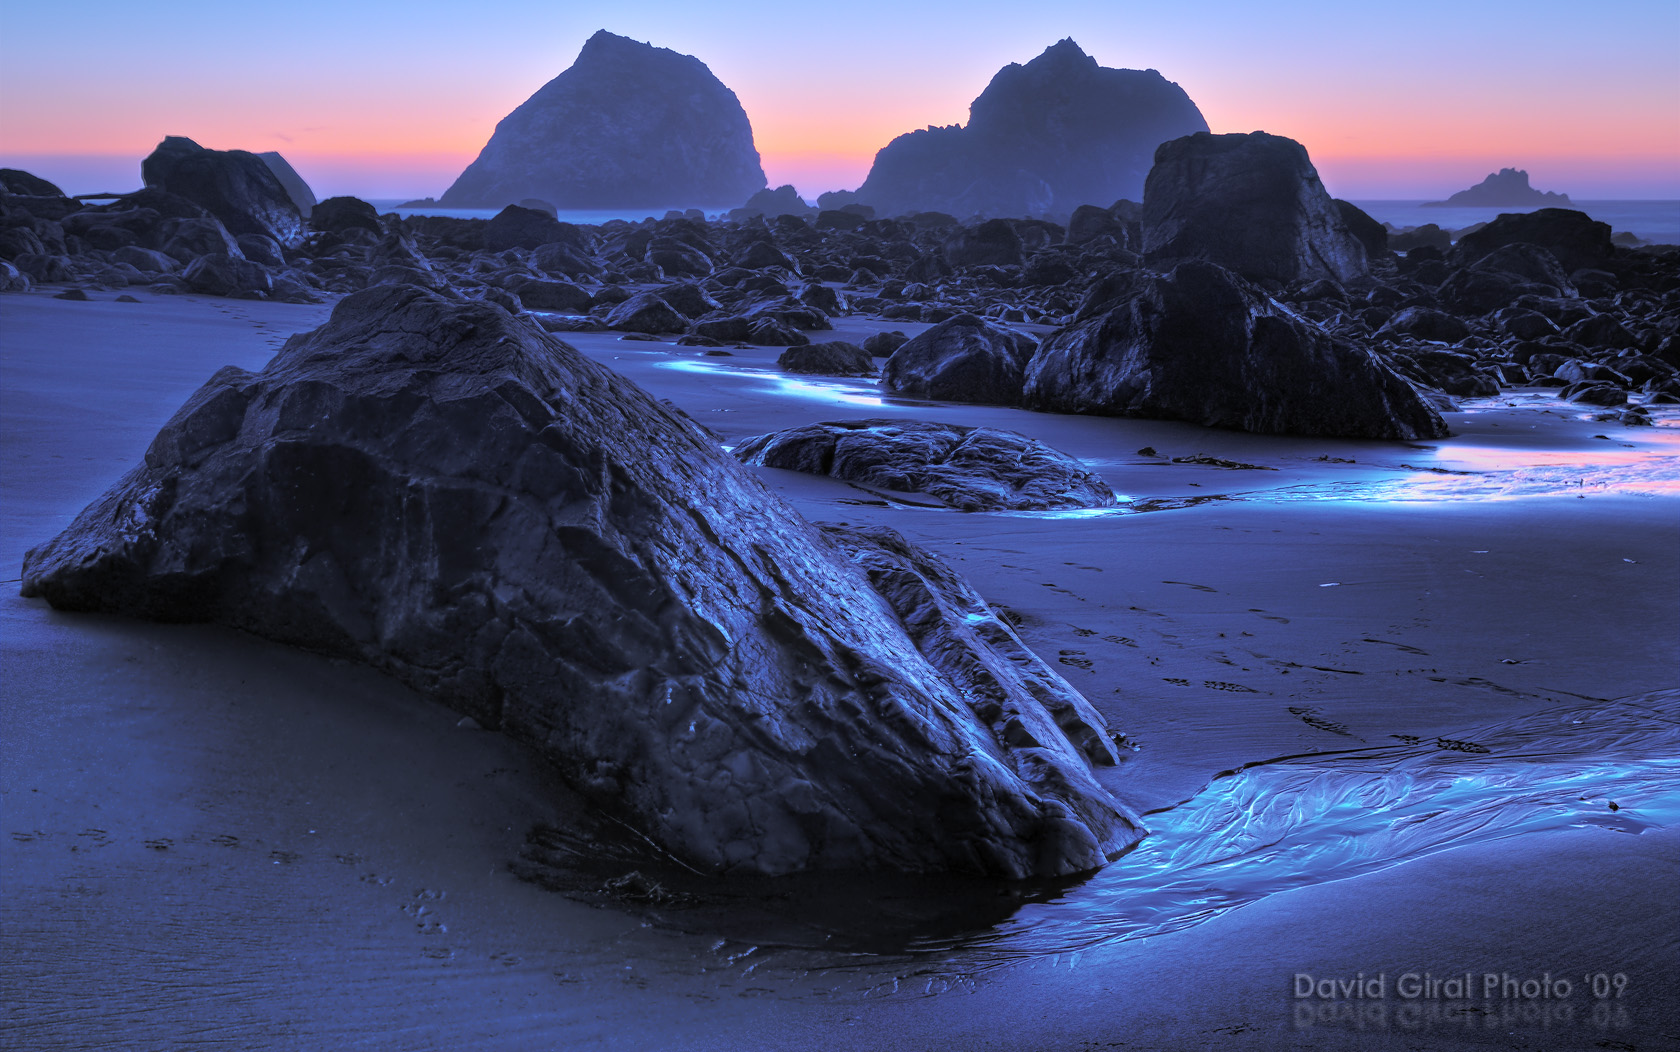 Landscape Photography :Top 10 Photos of 2009